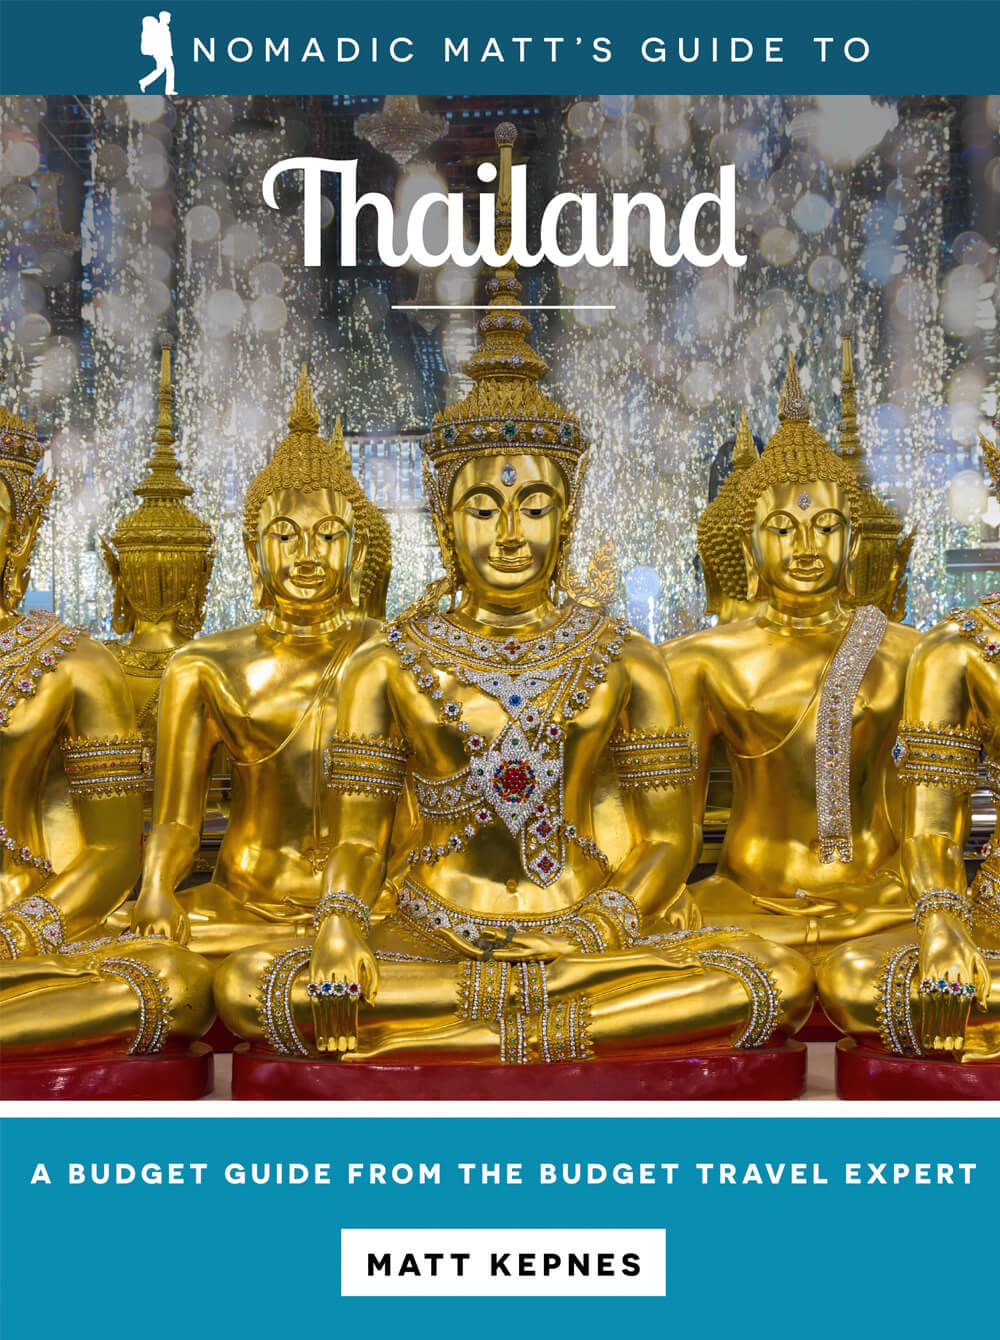 Nomadic Matt's Guide to Thailand